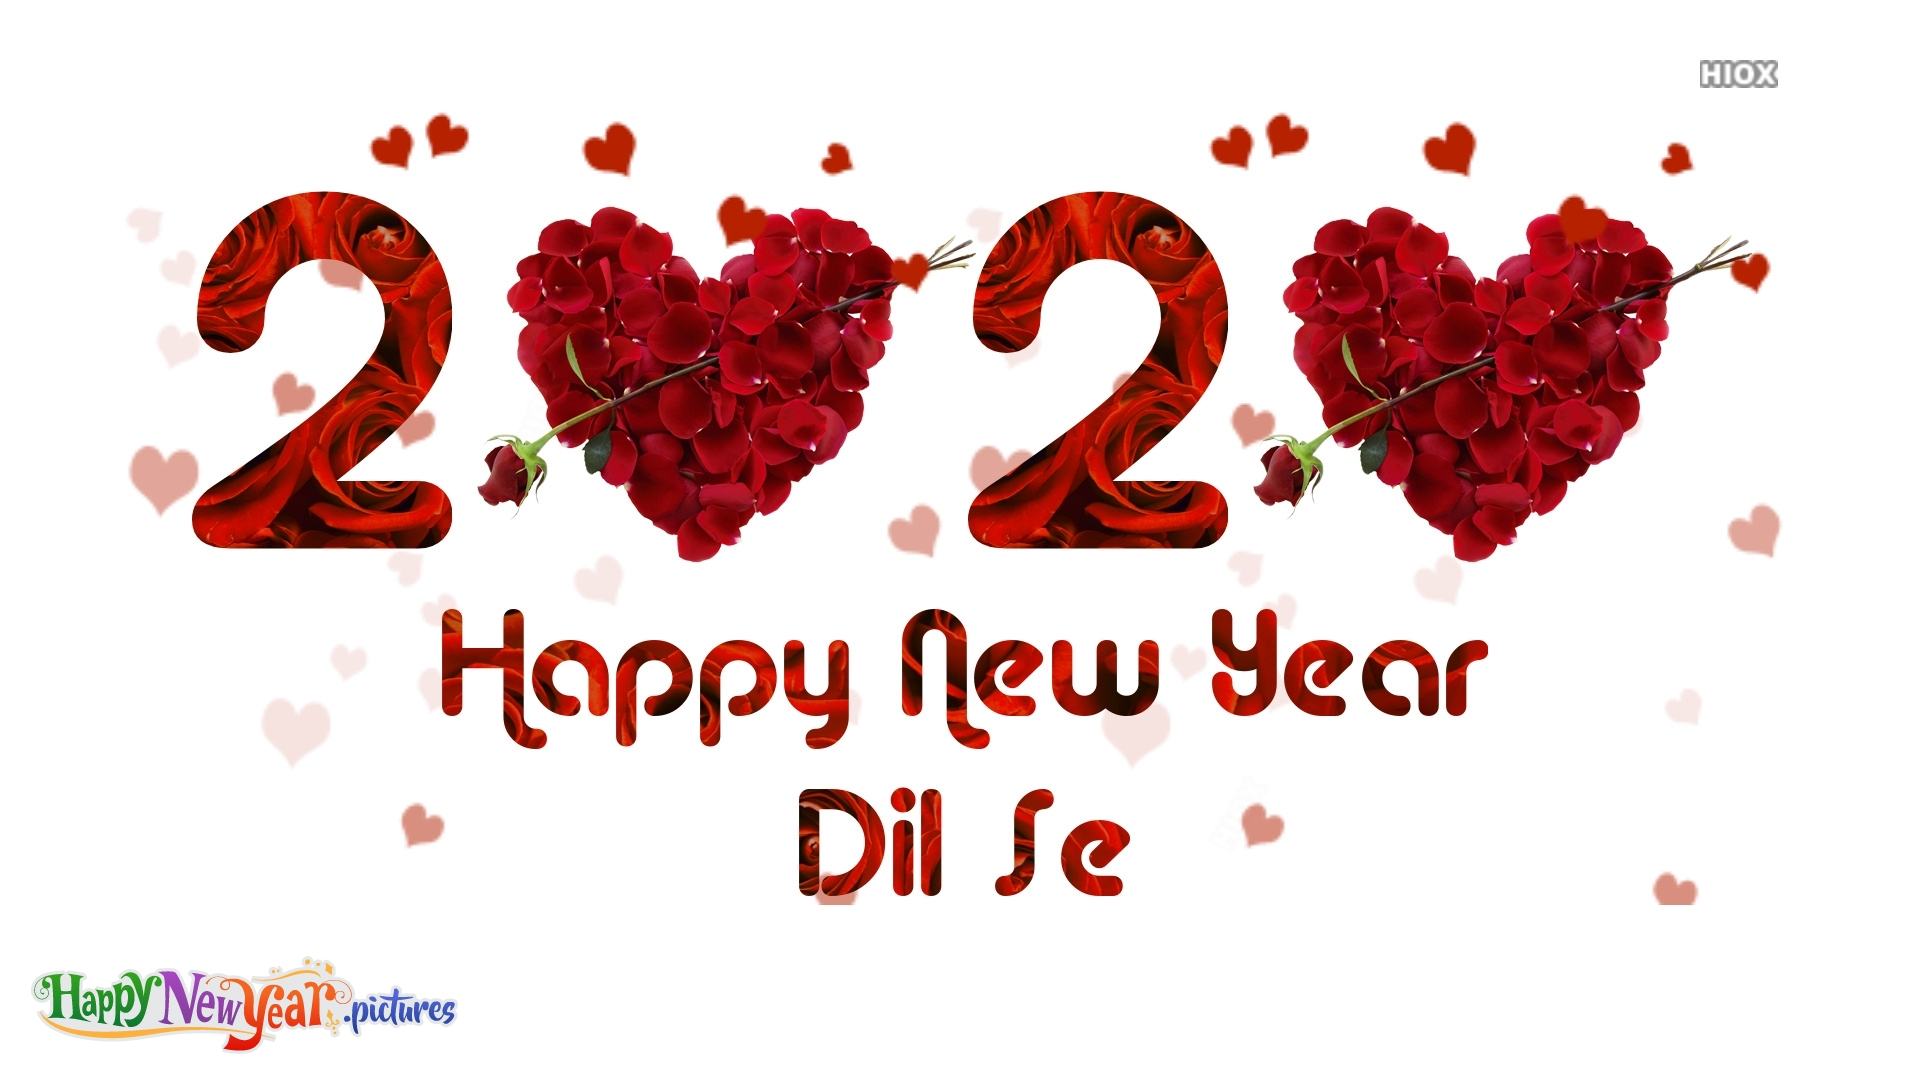 Happy New Year Dil Se